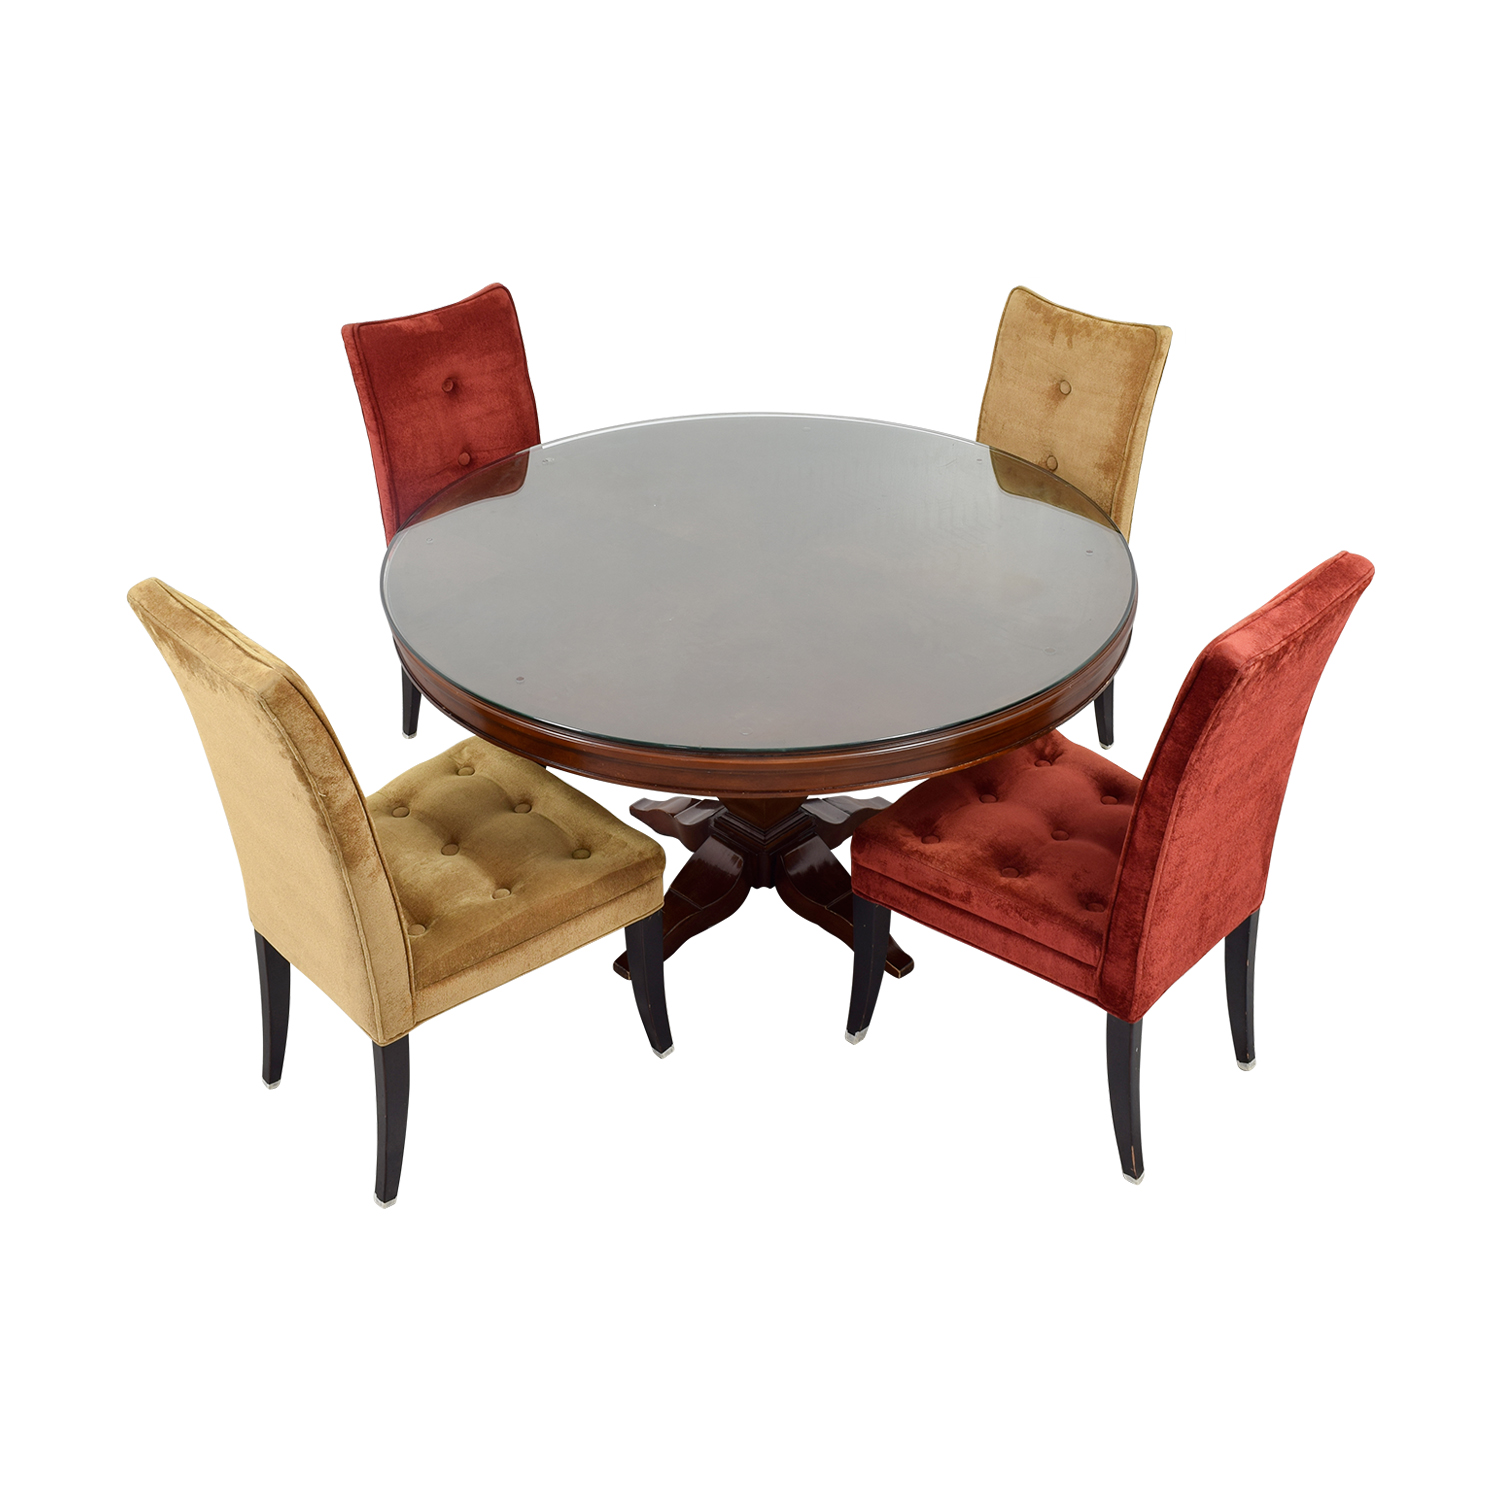 Bombay Bombay Artisan Round Dining Table with Red & Beige Chairs discount